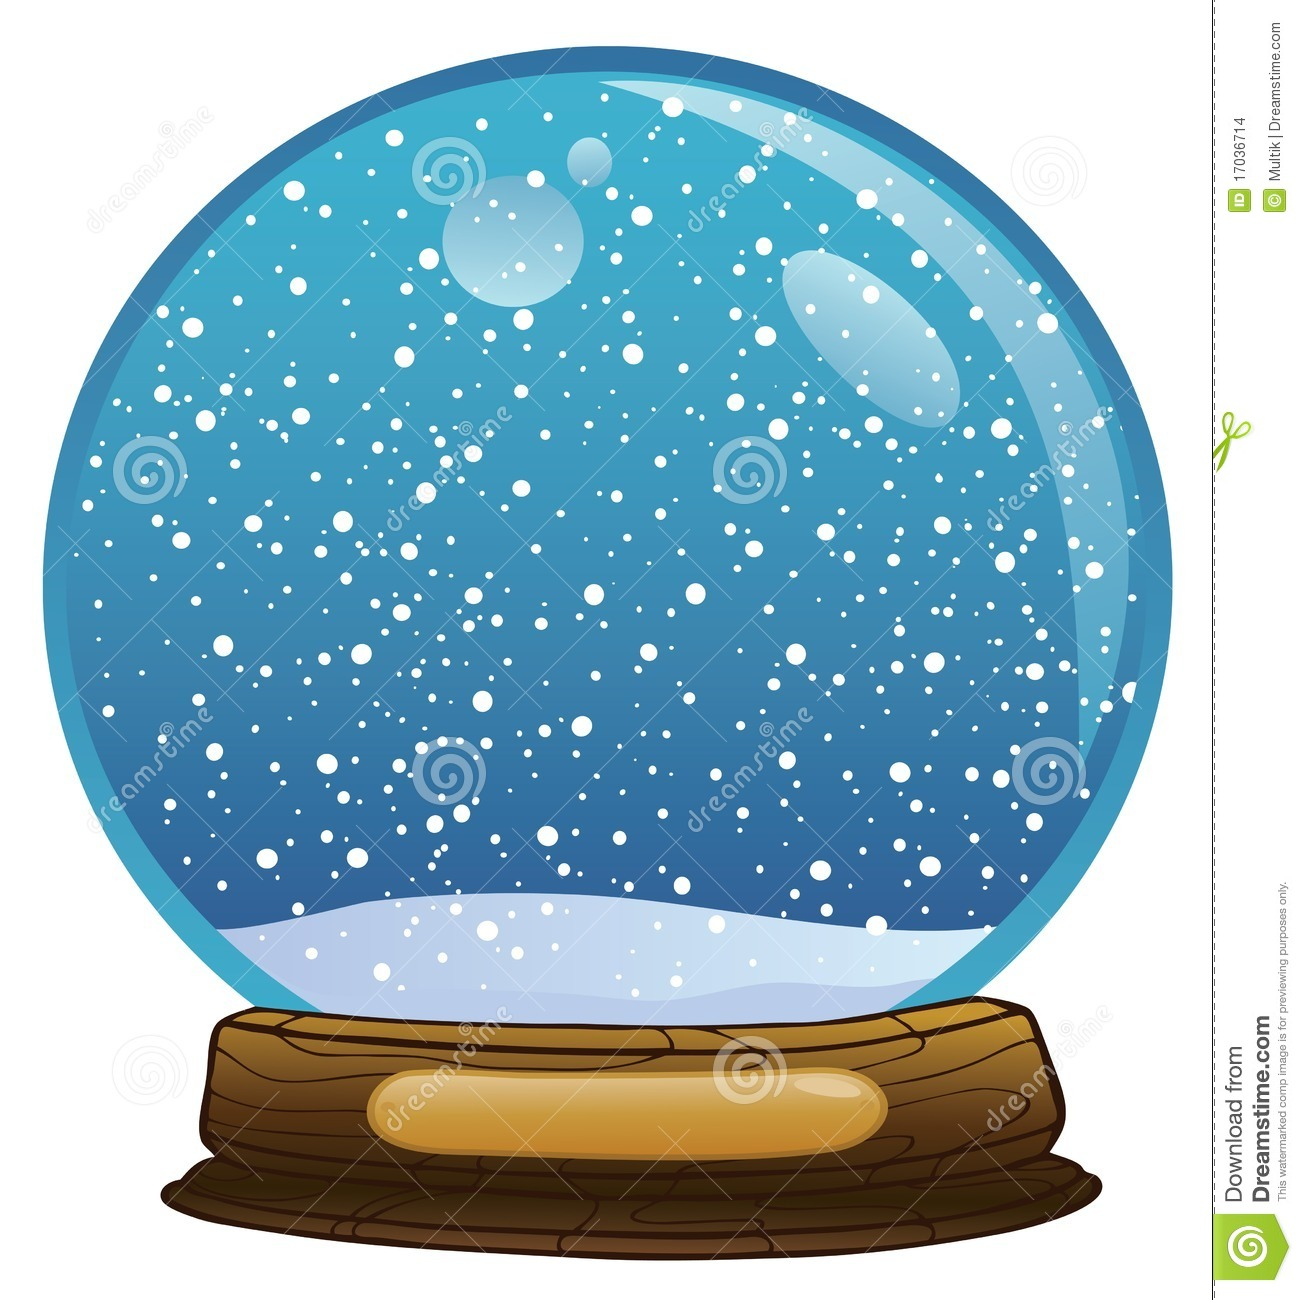 Snowglobe Stock Images - Image: 17036714